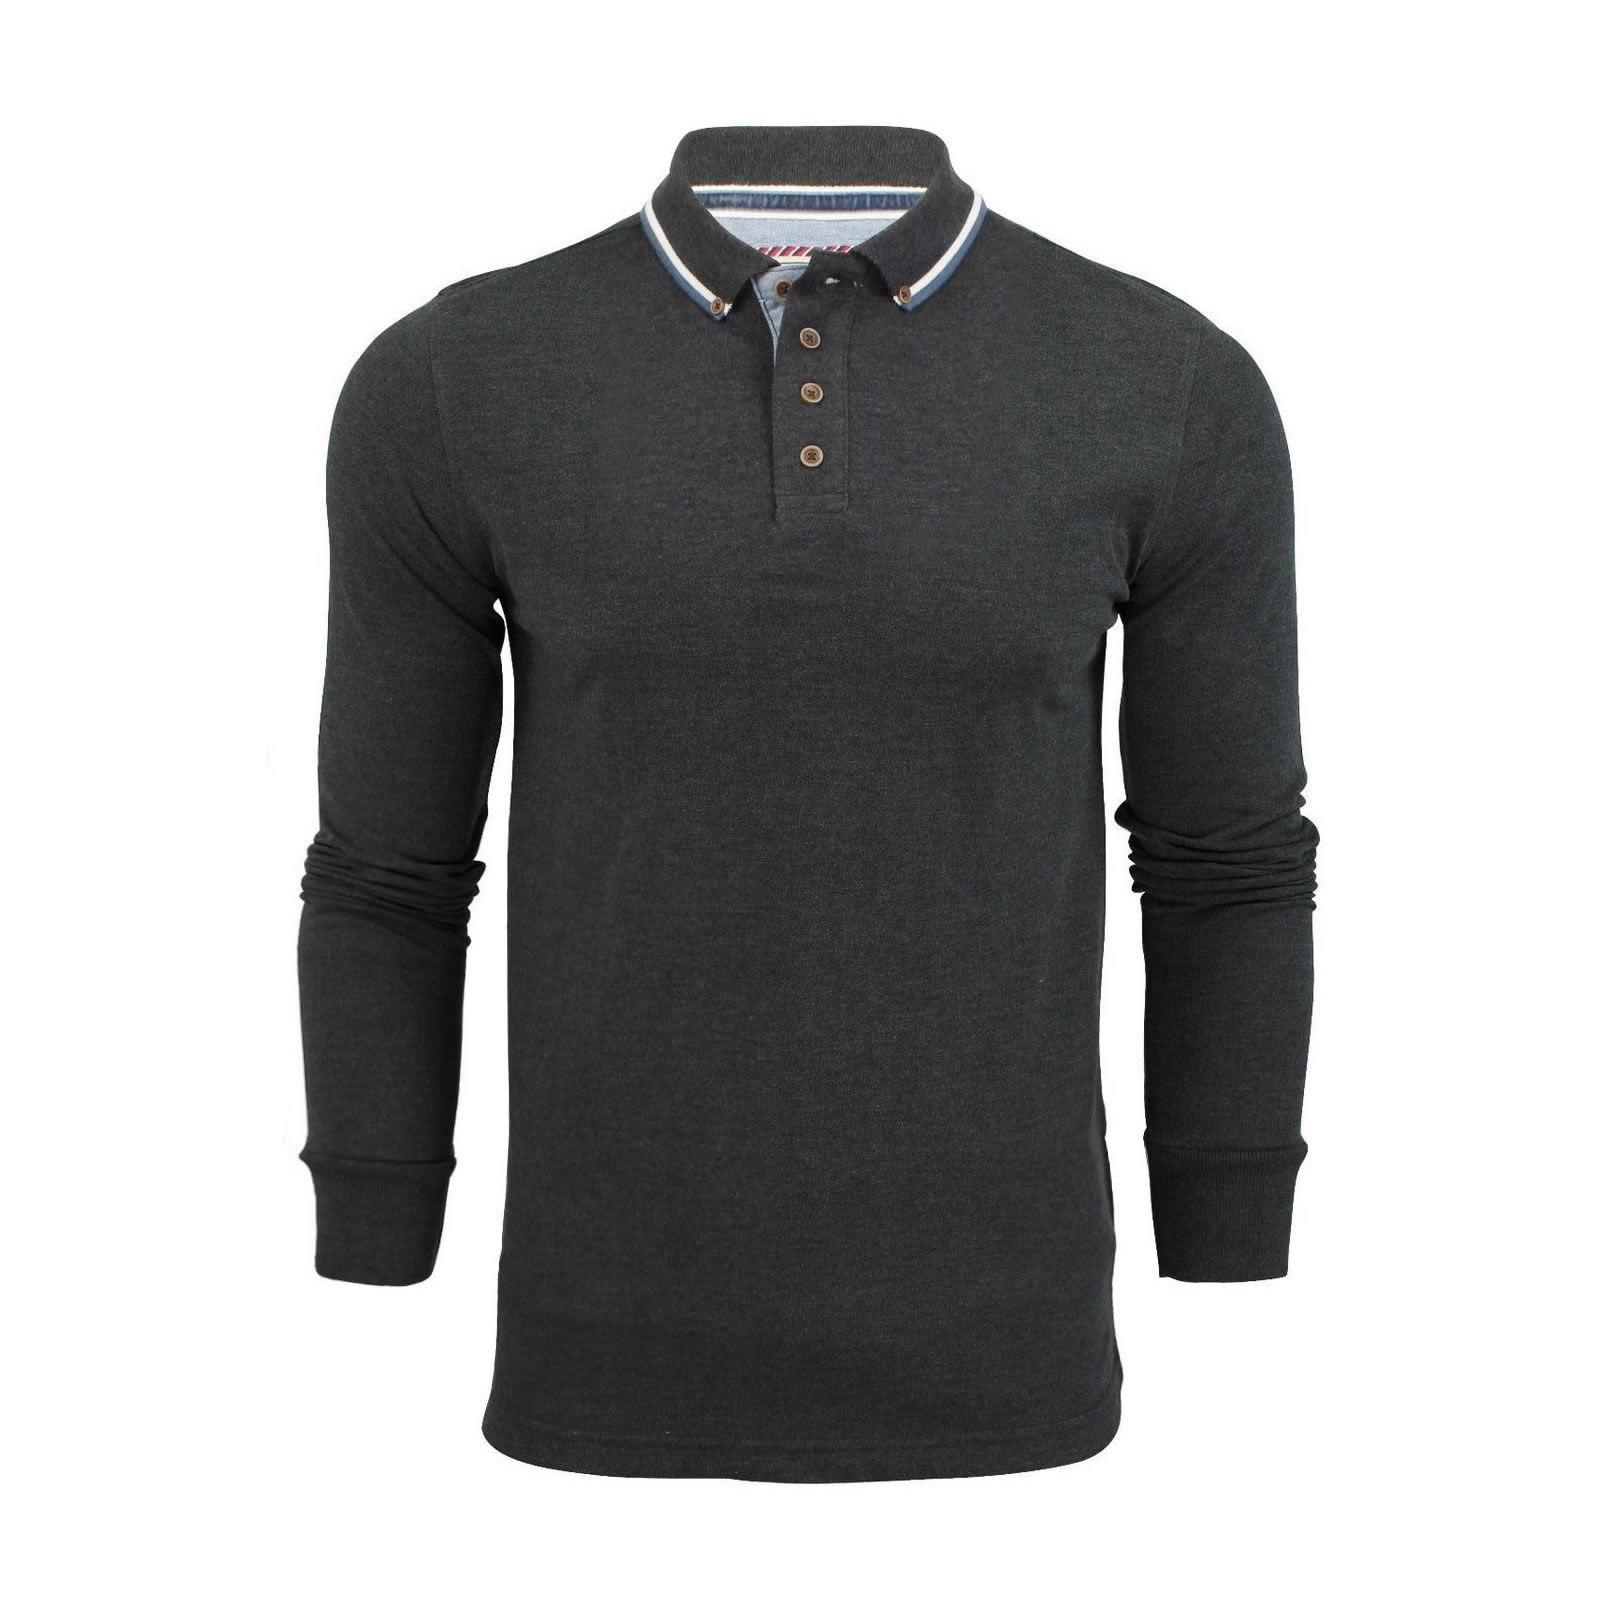 Brave-Soul-Lincoln-Mens-Polo-T-Shirt-Long-Sleeve-Cotton-Pique-Casual-Top thumbnail 15